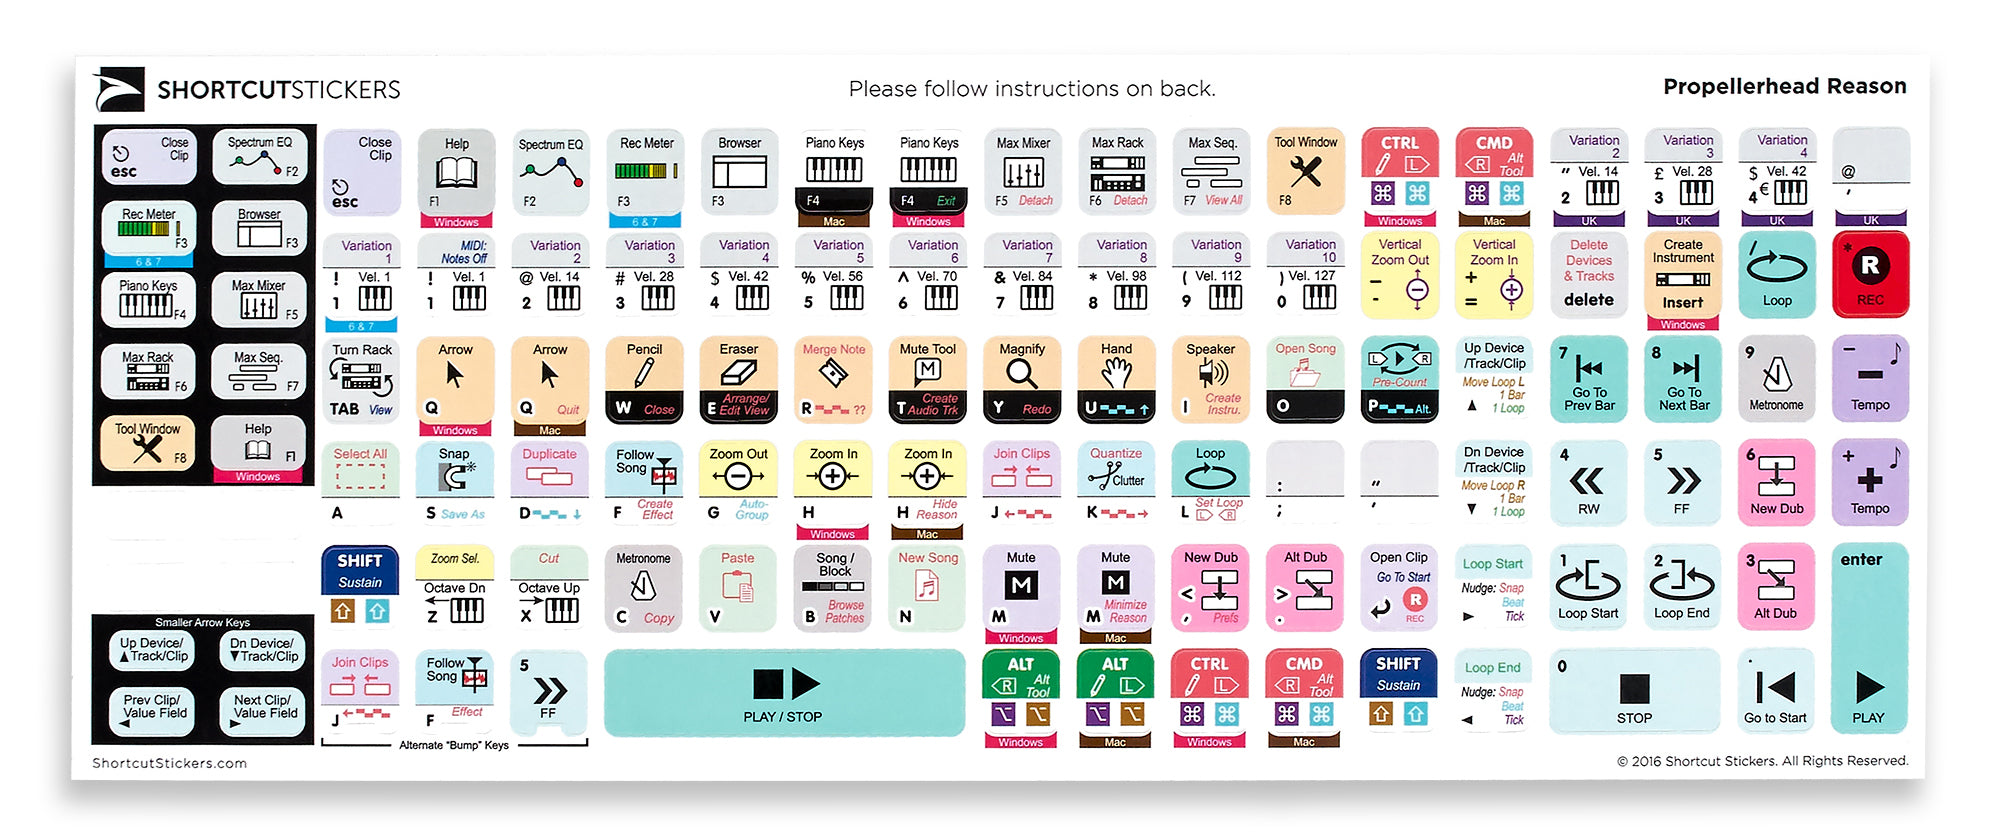 The Best Logic Pro Shortcut Stickers WHITE ADVANCED Ever.